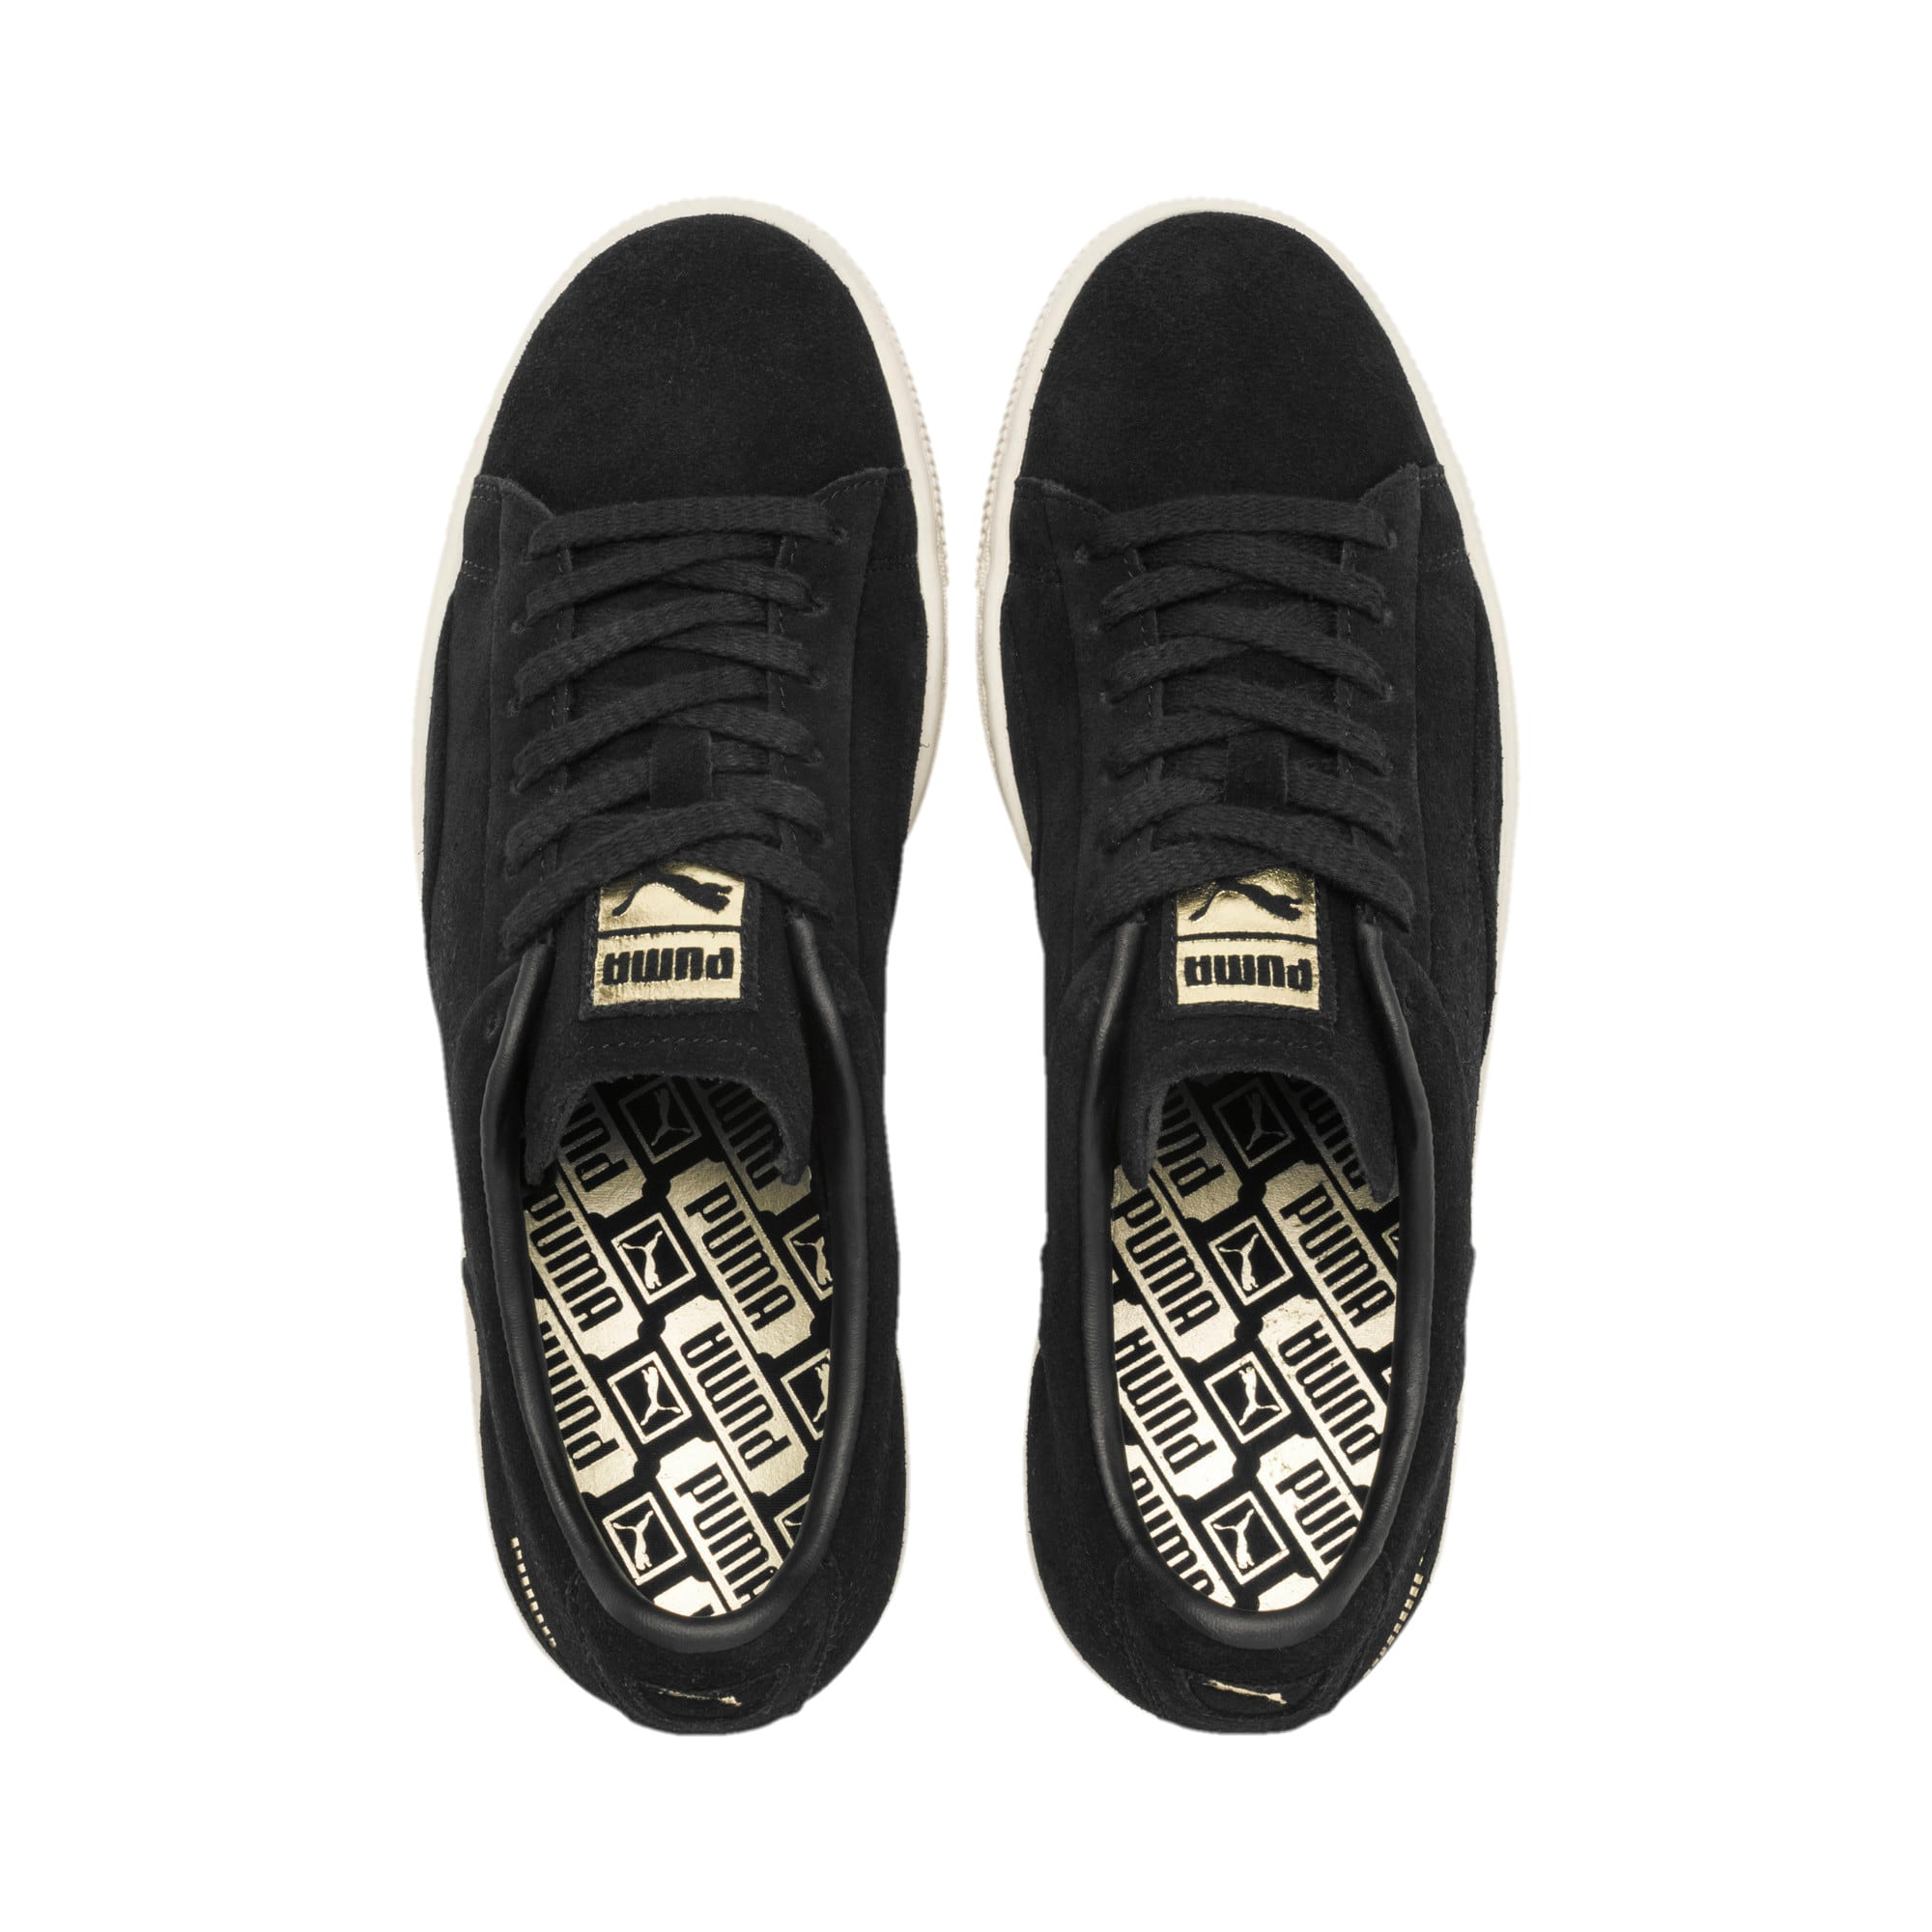 Thumbnail 7 of Suede Notch Trainers, Puma Black-White-gold, medium